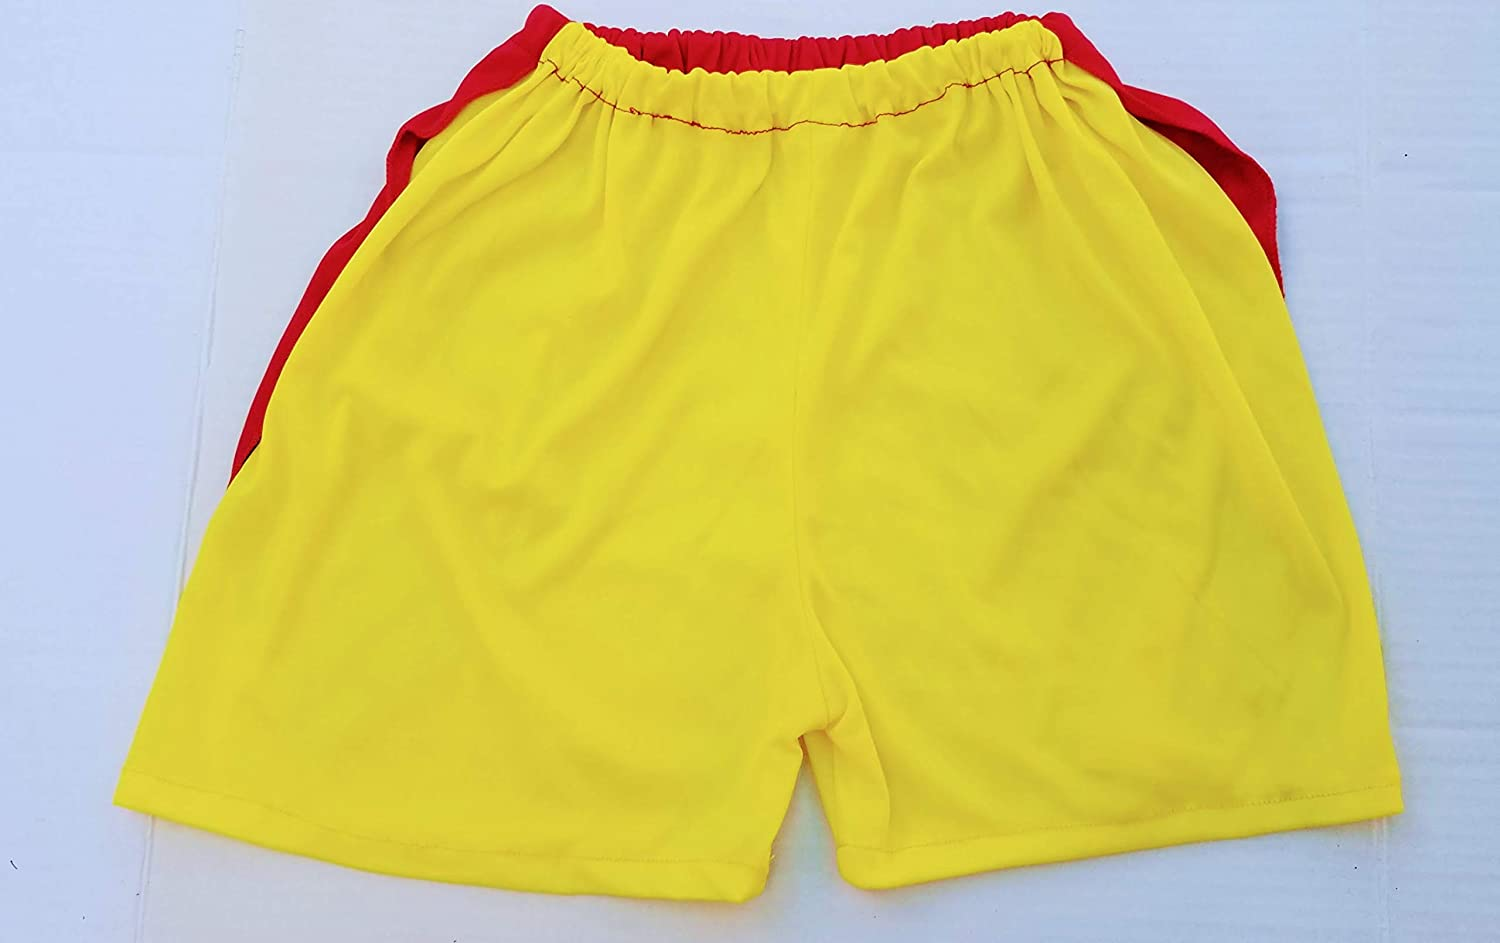 CMCYY Little Toddler Boys Casual Comfort Pull-On Cotton Soft Pants